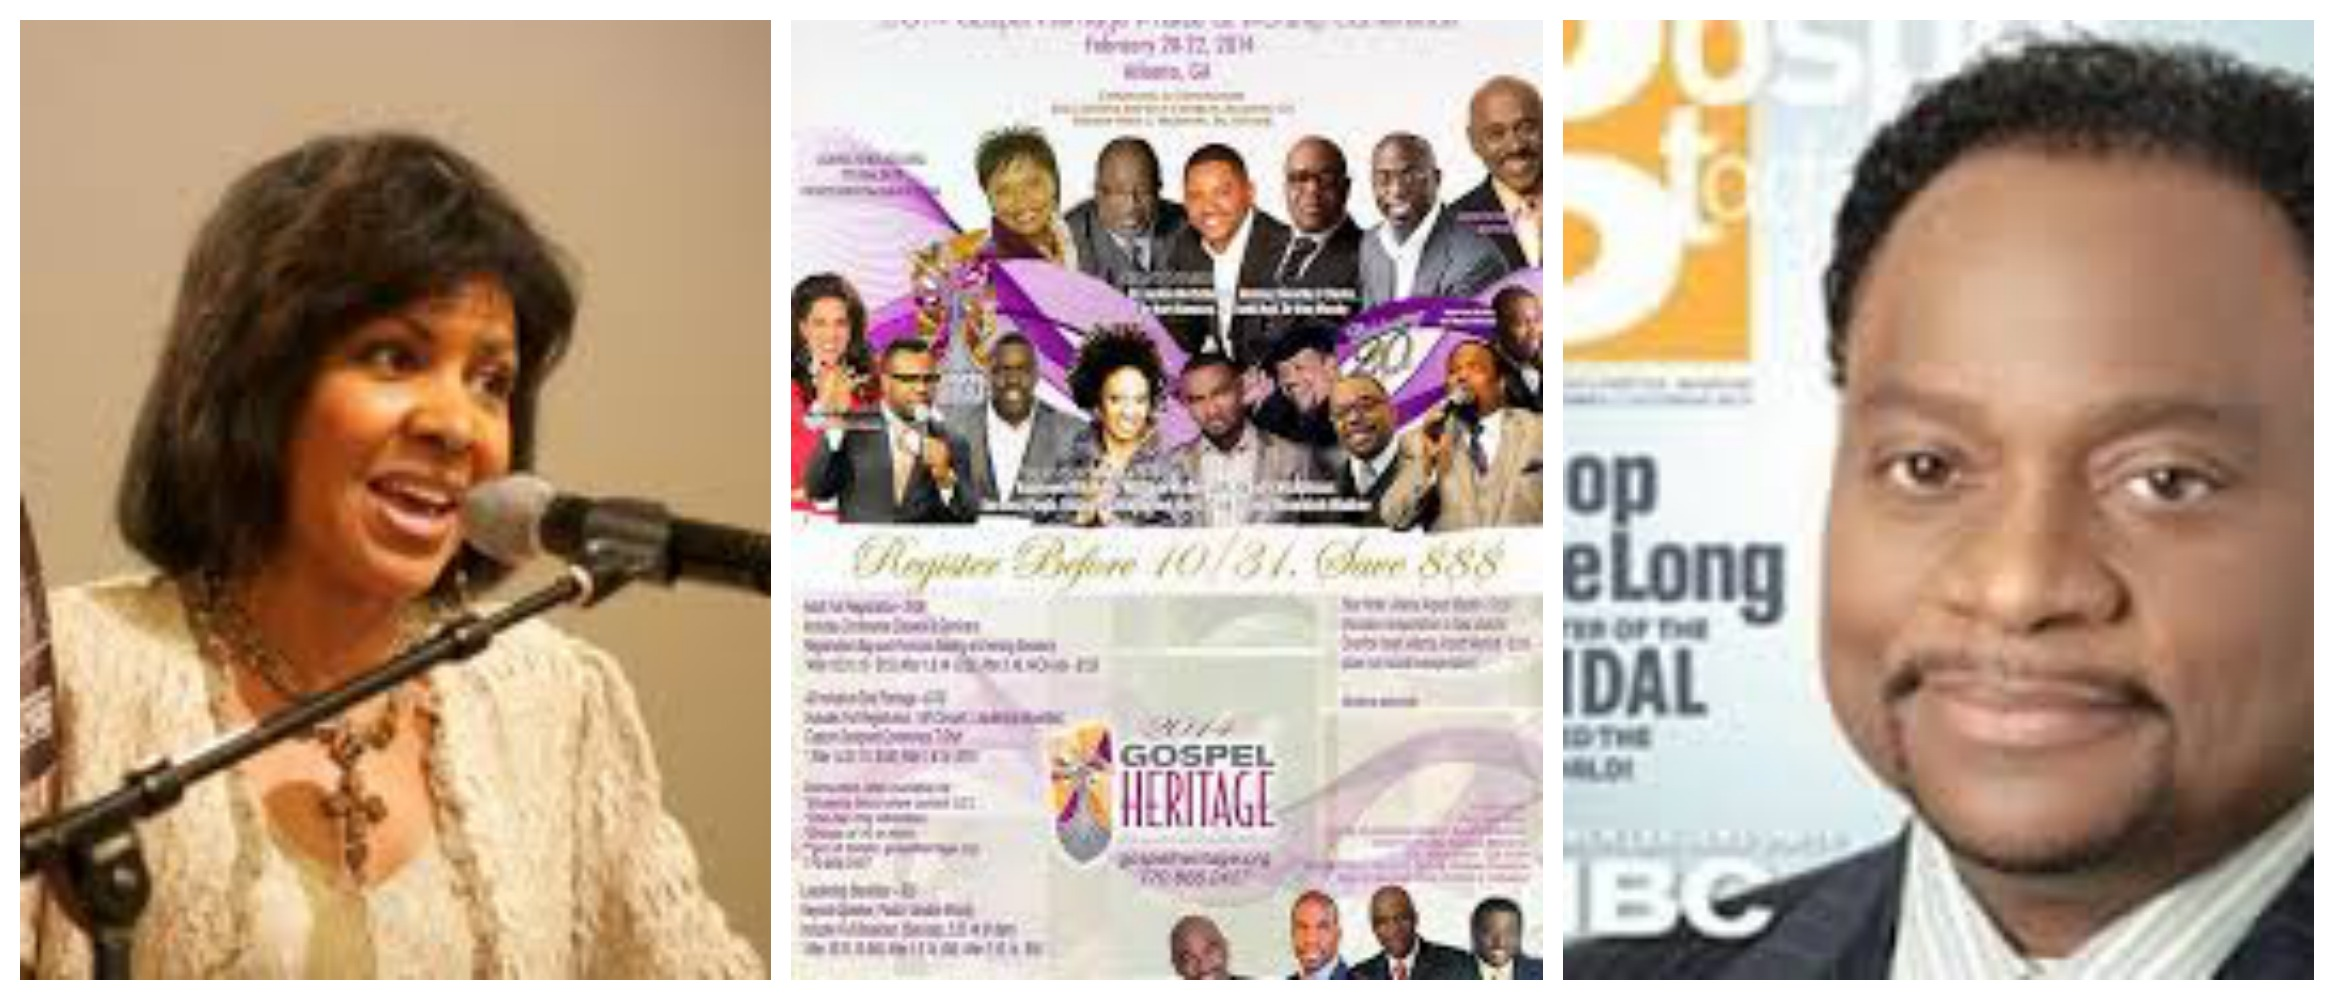 eddie-long-gospel-heritage-conference